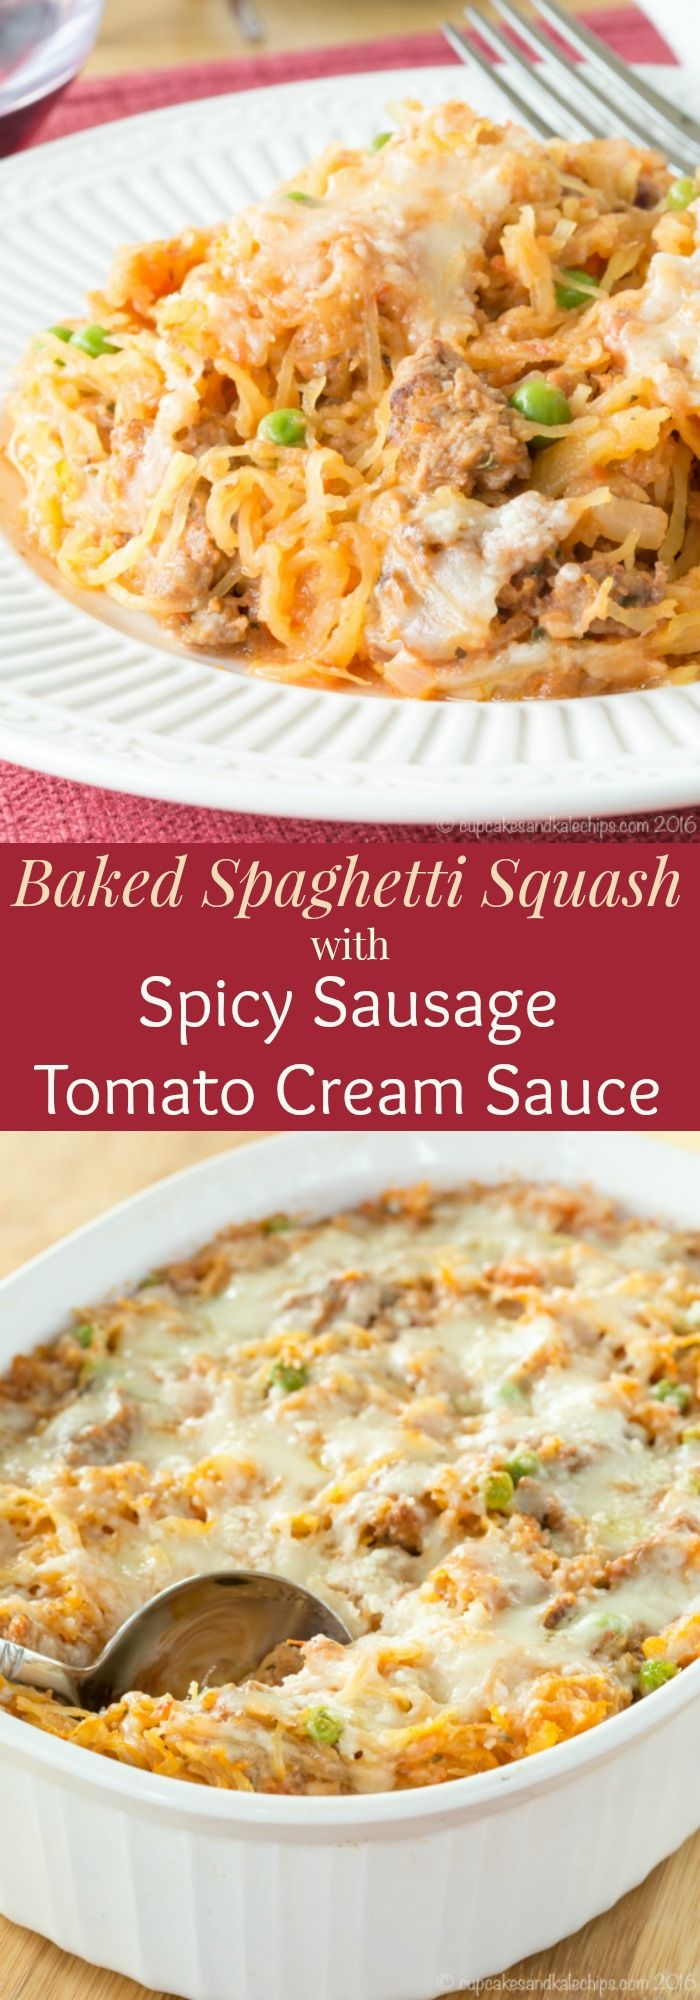 Baked Spaghetti Squash with Spicy Sausage Tomato Cream Sauce - a healthy, gluten free, low carb comfort food that's just as creamy, cheesy, and delicious as any pasta casserole recipe. | cupcakesandkalechips.com